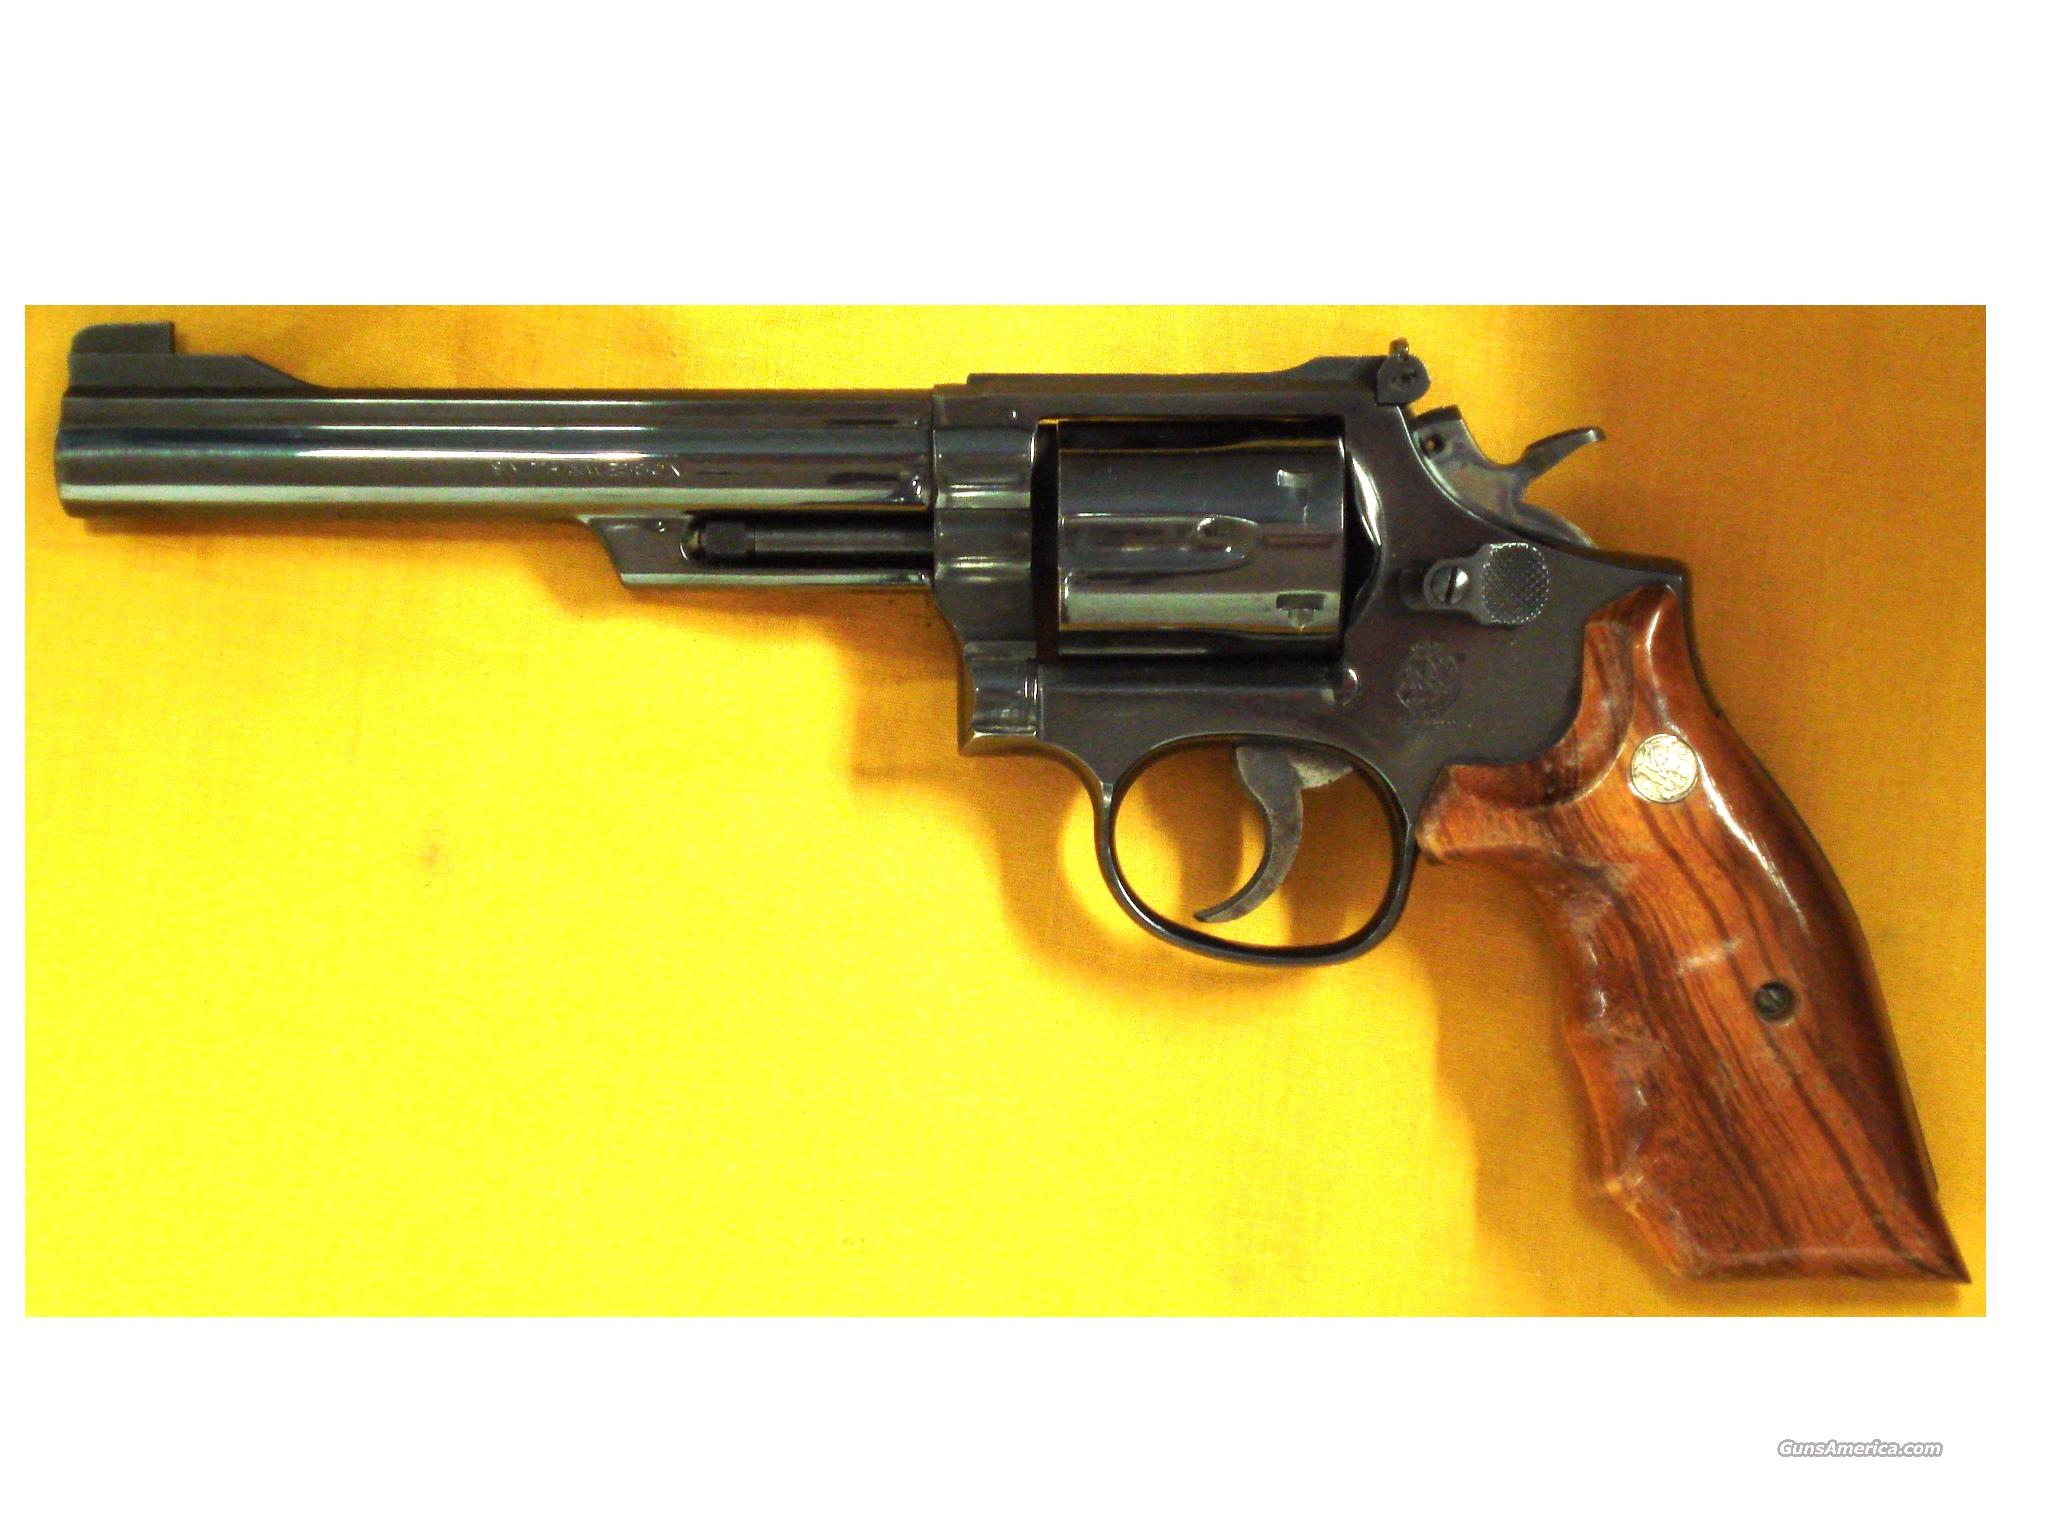 "S&W 19-4 .357 MAGNUM 6"" BARREL  Guns > Pistols > Smith & Wesson Revolvers > Full Frame Revolver"